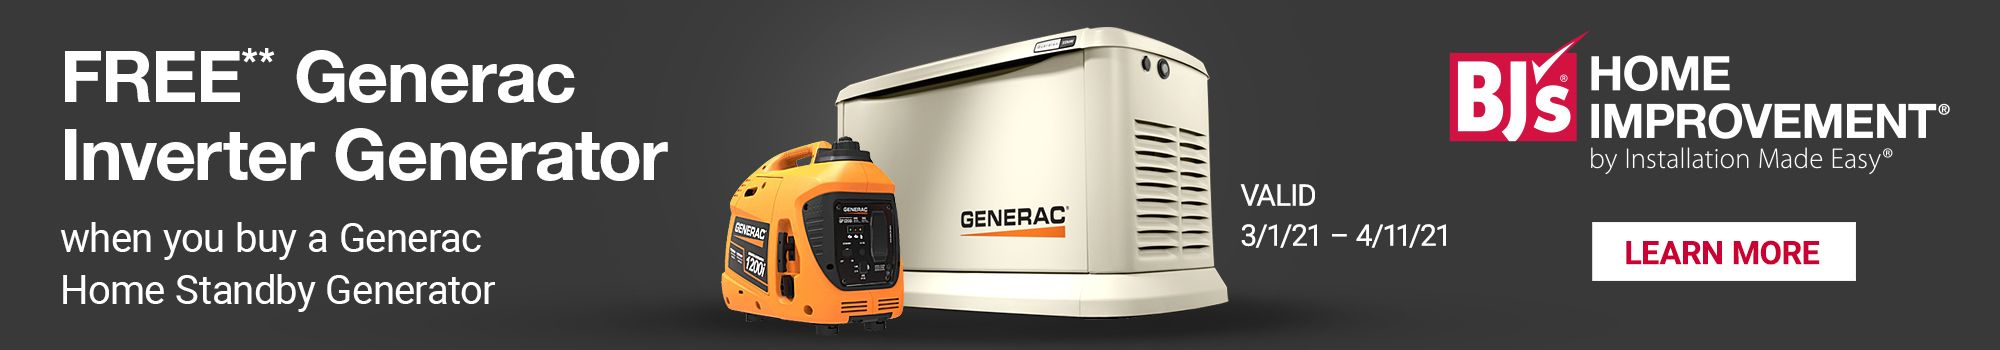 FREE** Generac Inverter Generator when you buy a Generac Home Stanby Generator. Valid 3/1/21 - 4/11/21. BJ's Home Improvement by Installation Made Easy. Click here to learn more.